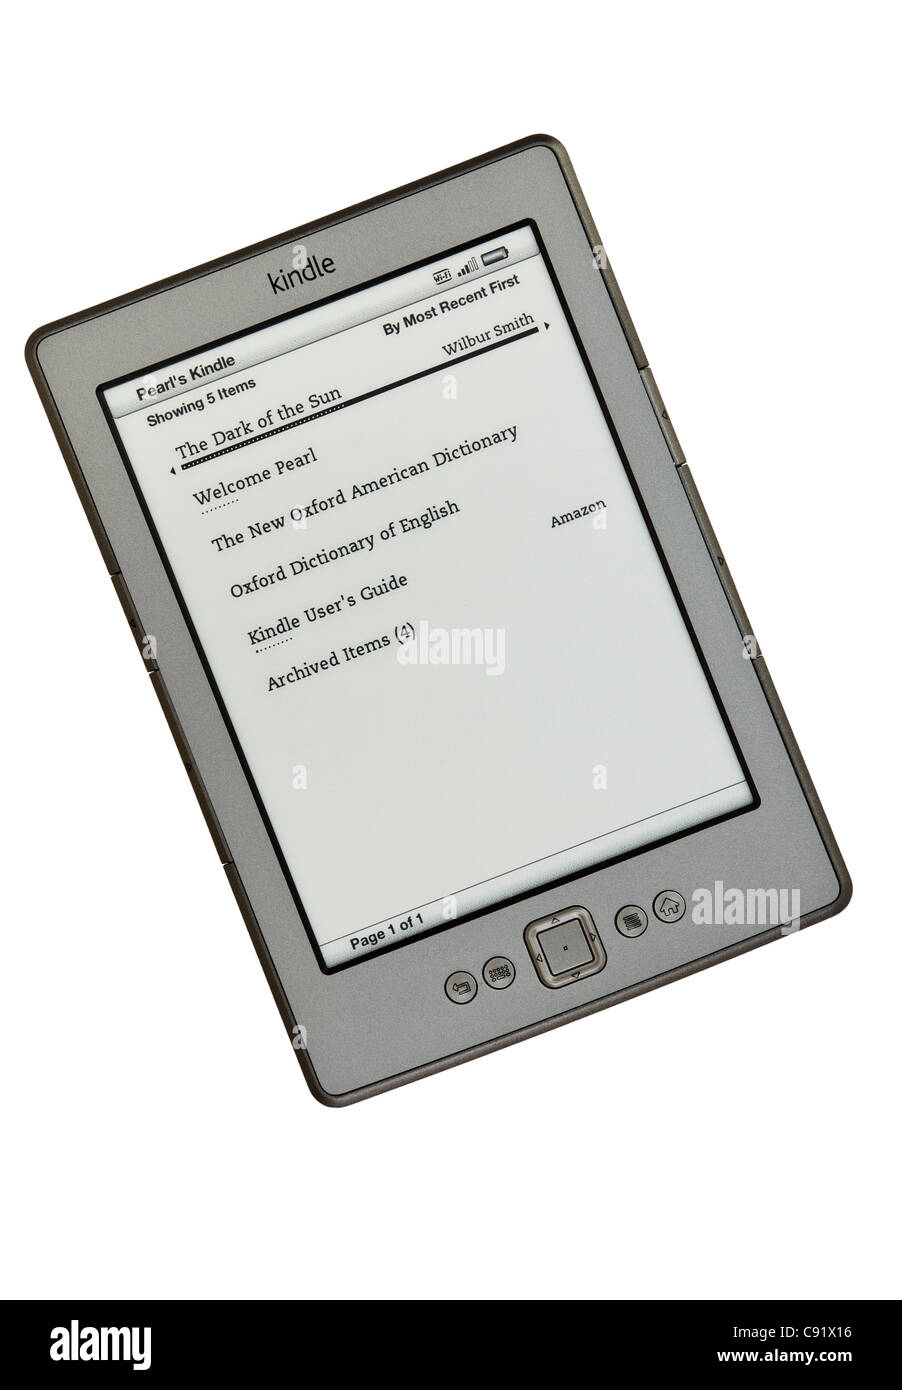 New Amazon wifi Kindle ebook reader books list page on a white background. England, UK, Britain - Stock Image